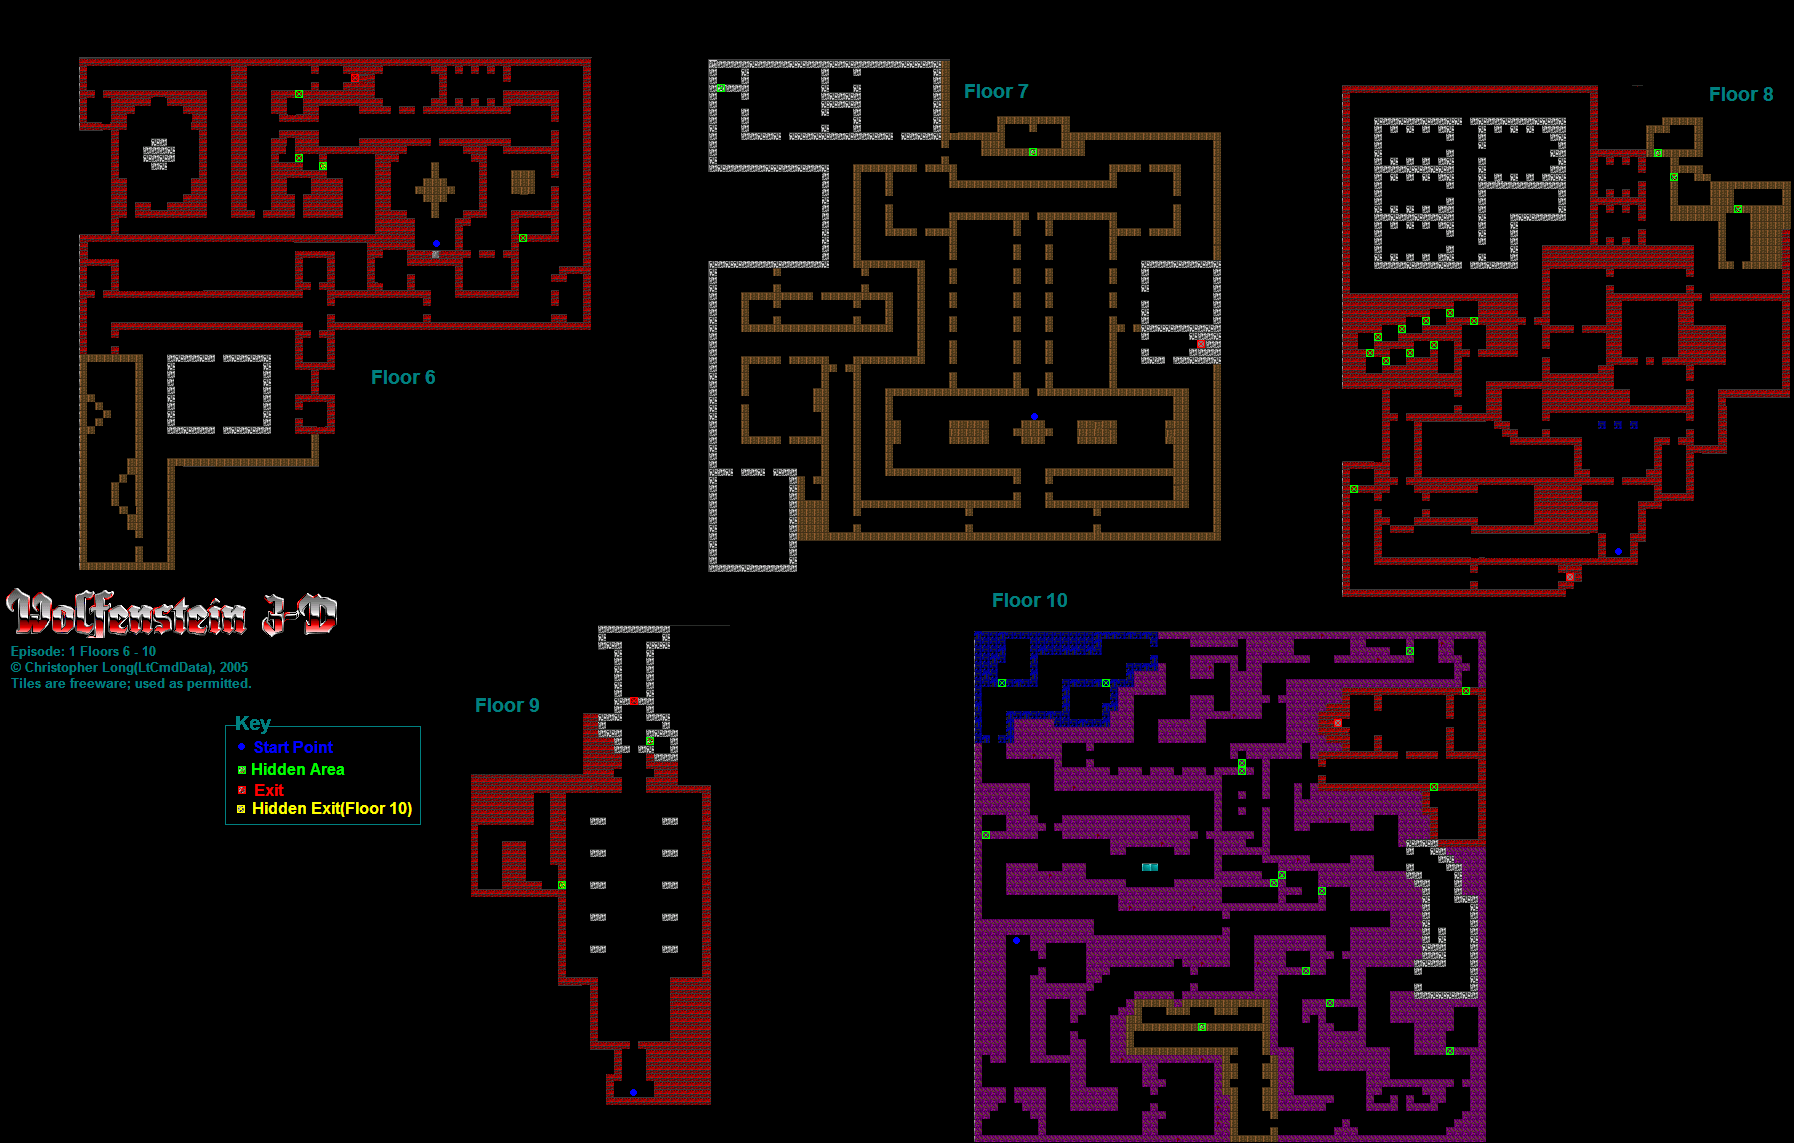 Wolfenstein 3D PC Episode 1 Floors 6 10 Maps by AWing Pilot